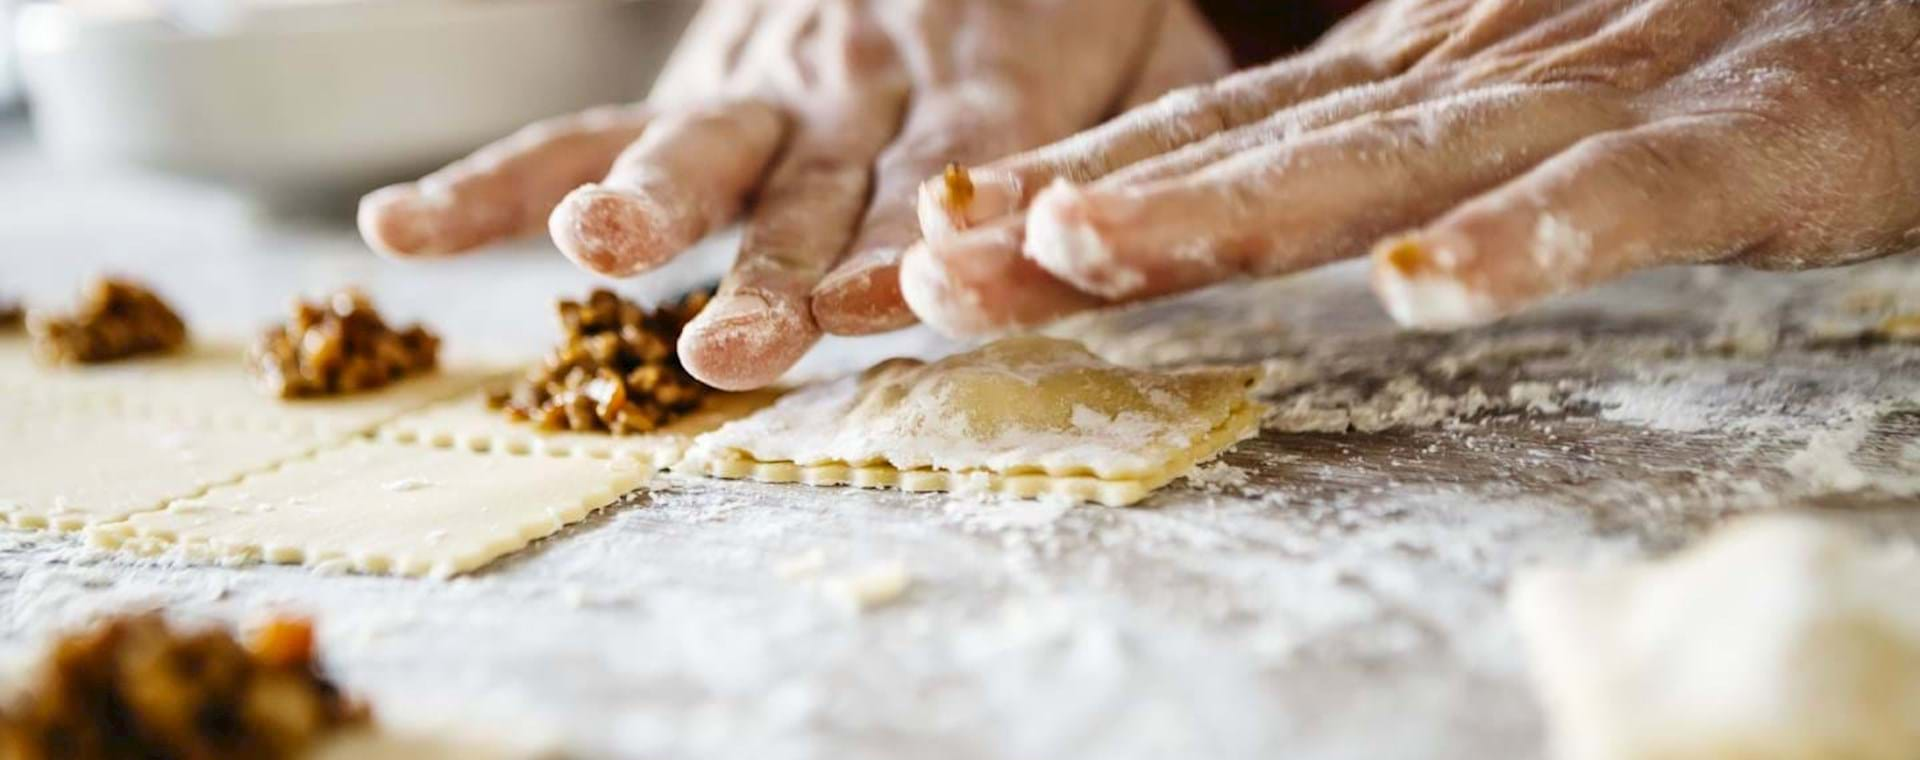 Authentic Italy: Pasta-Making Experience in Traditional Roman Home